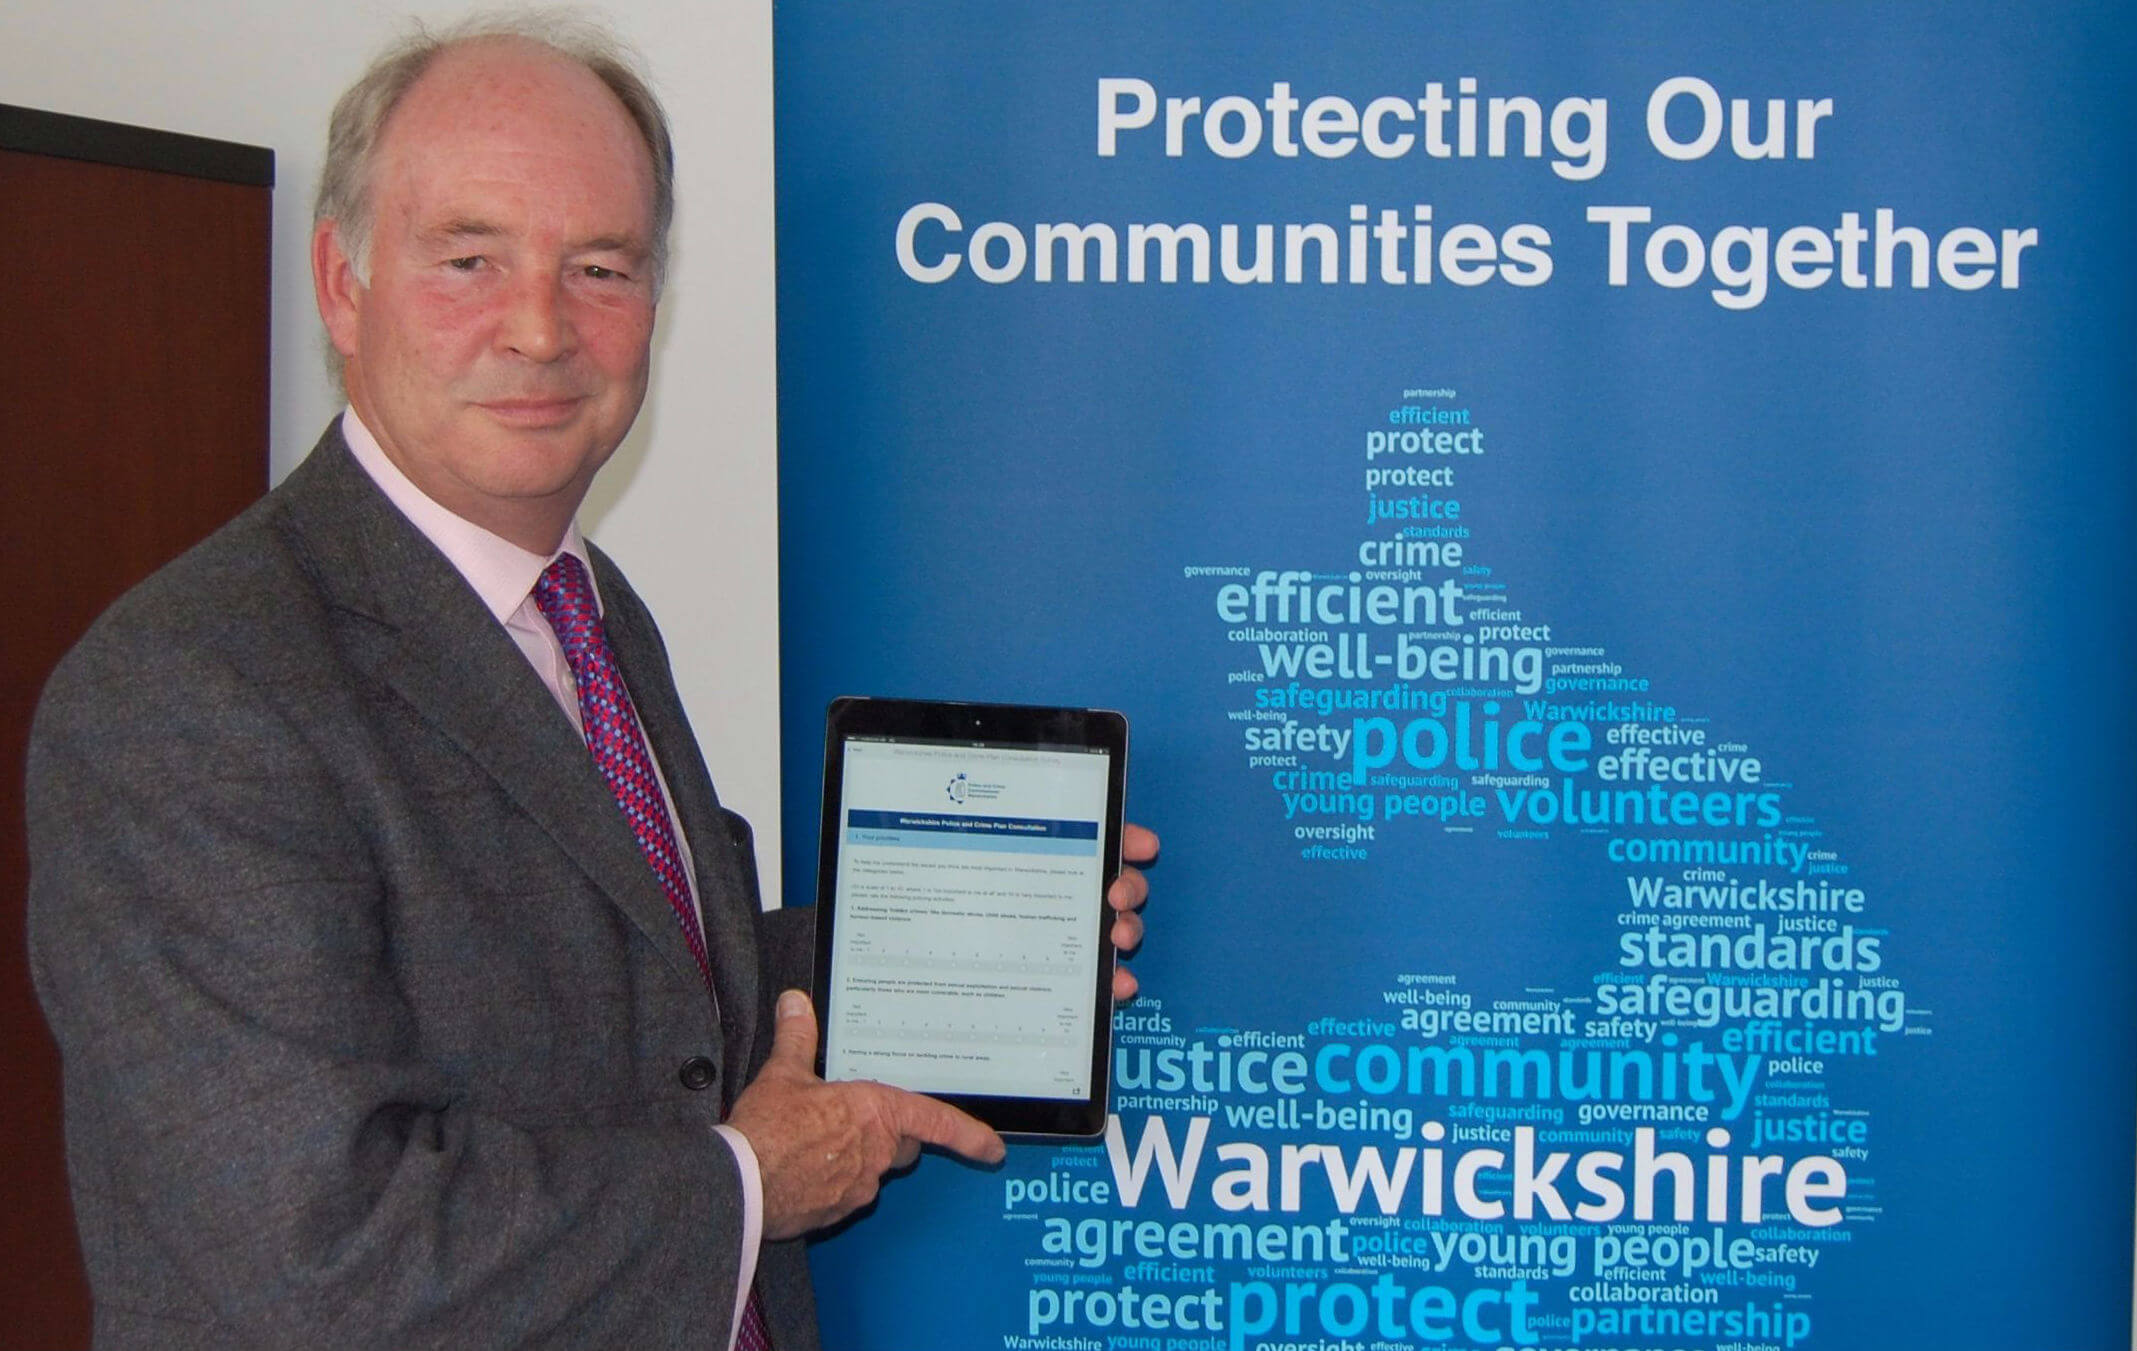 PCC Philip Seccombe with the consultation on an iPad